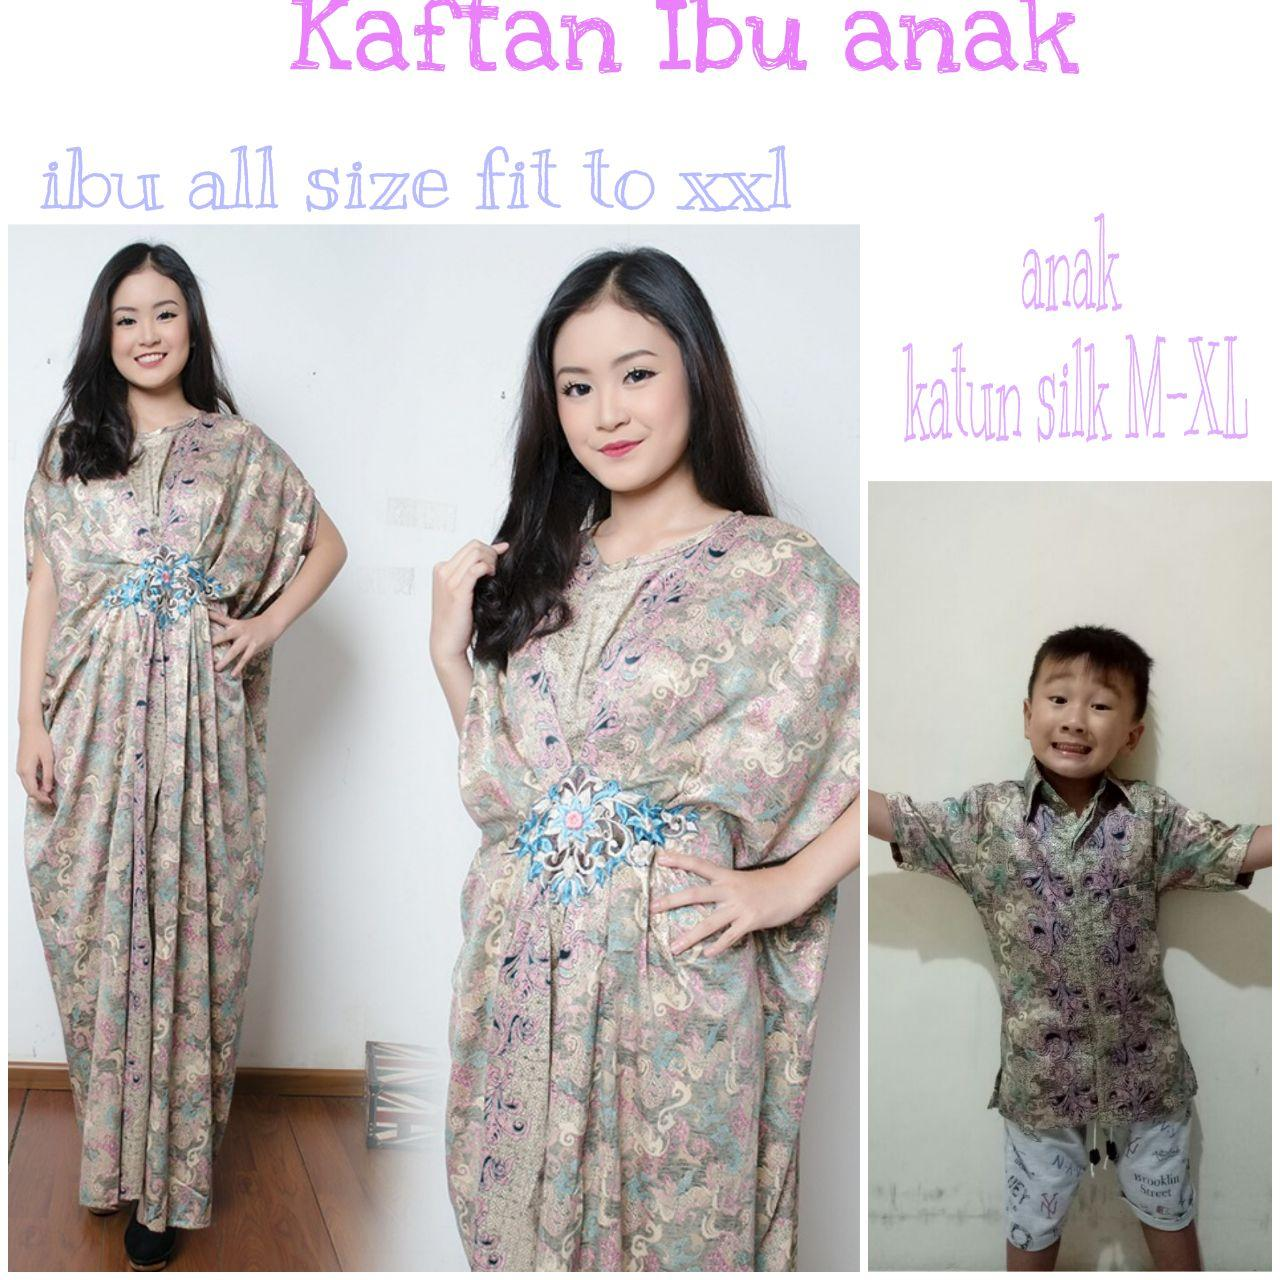 Cj collection Couple batik 2in1 dress maxi panjang gamis kaftan wanita jumbo long dress dan atasan kemeja pria anak shirt Prisda